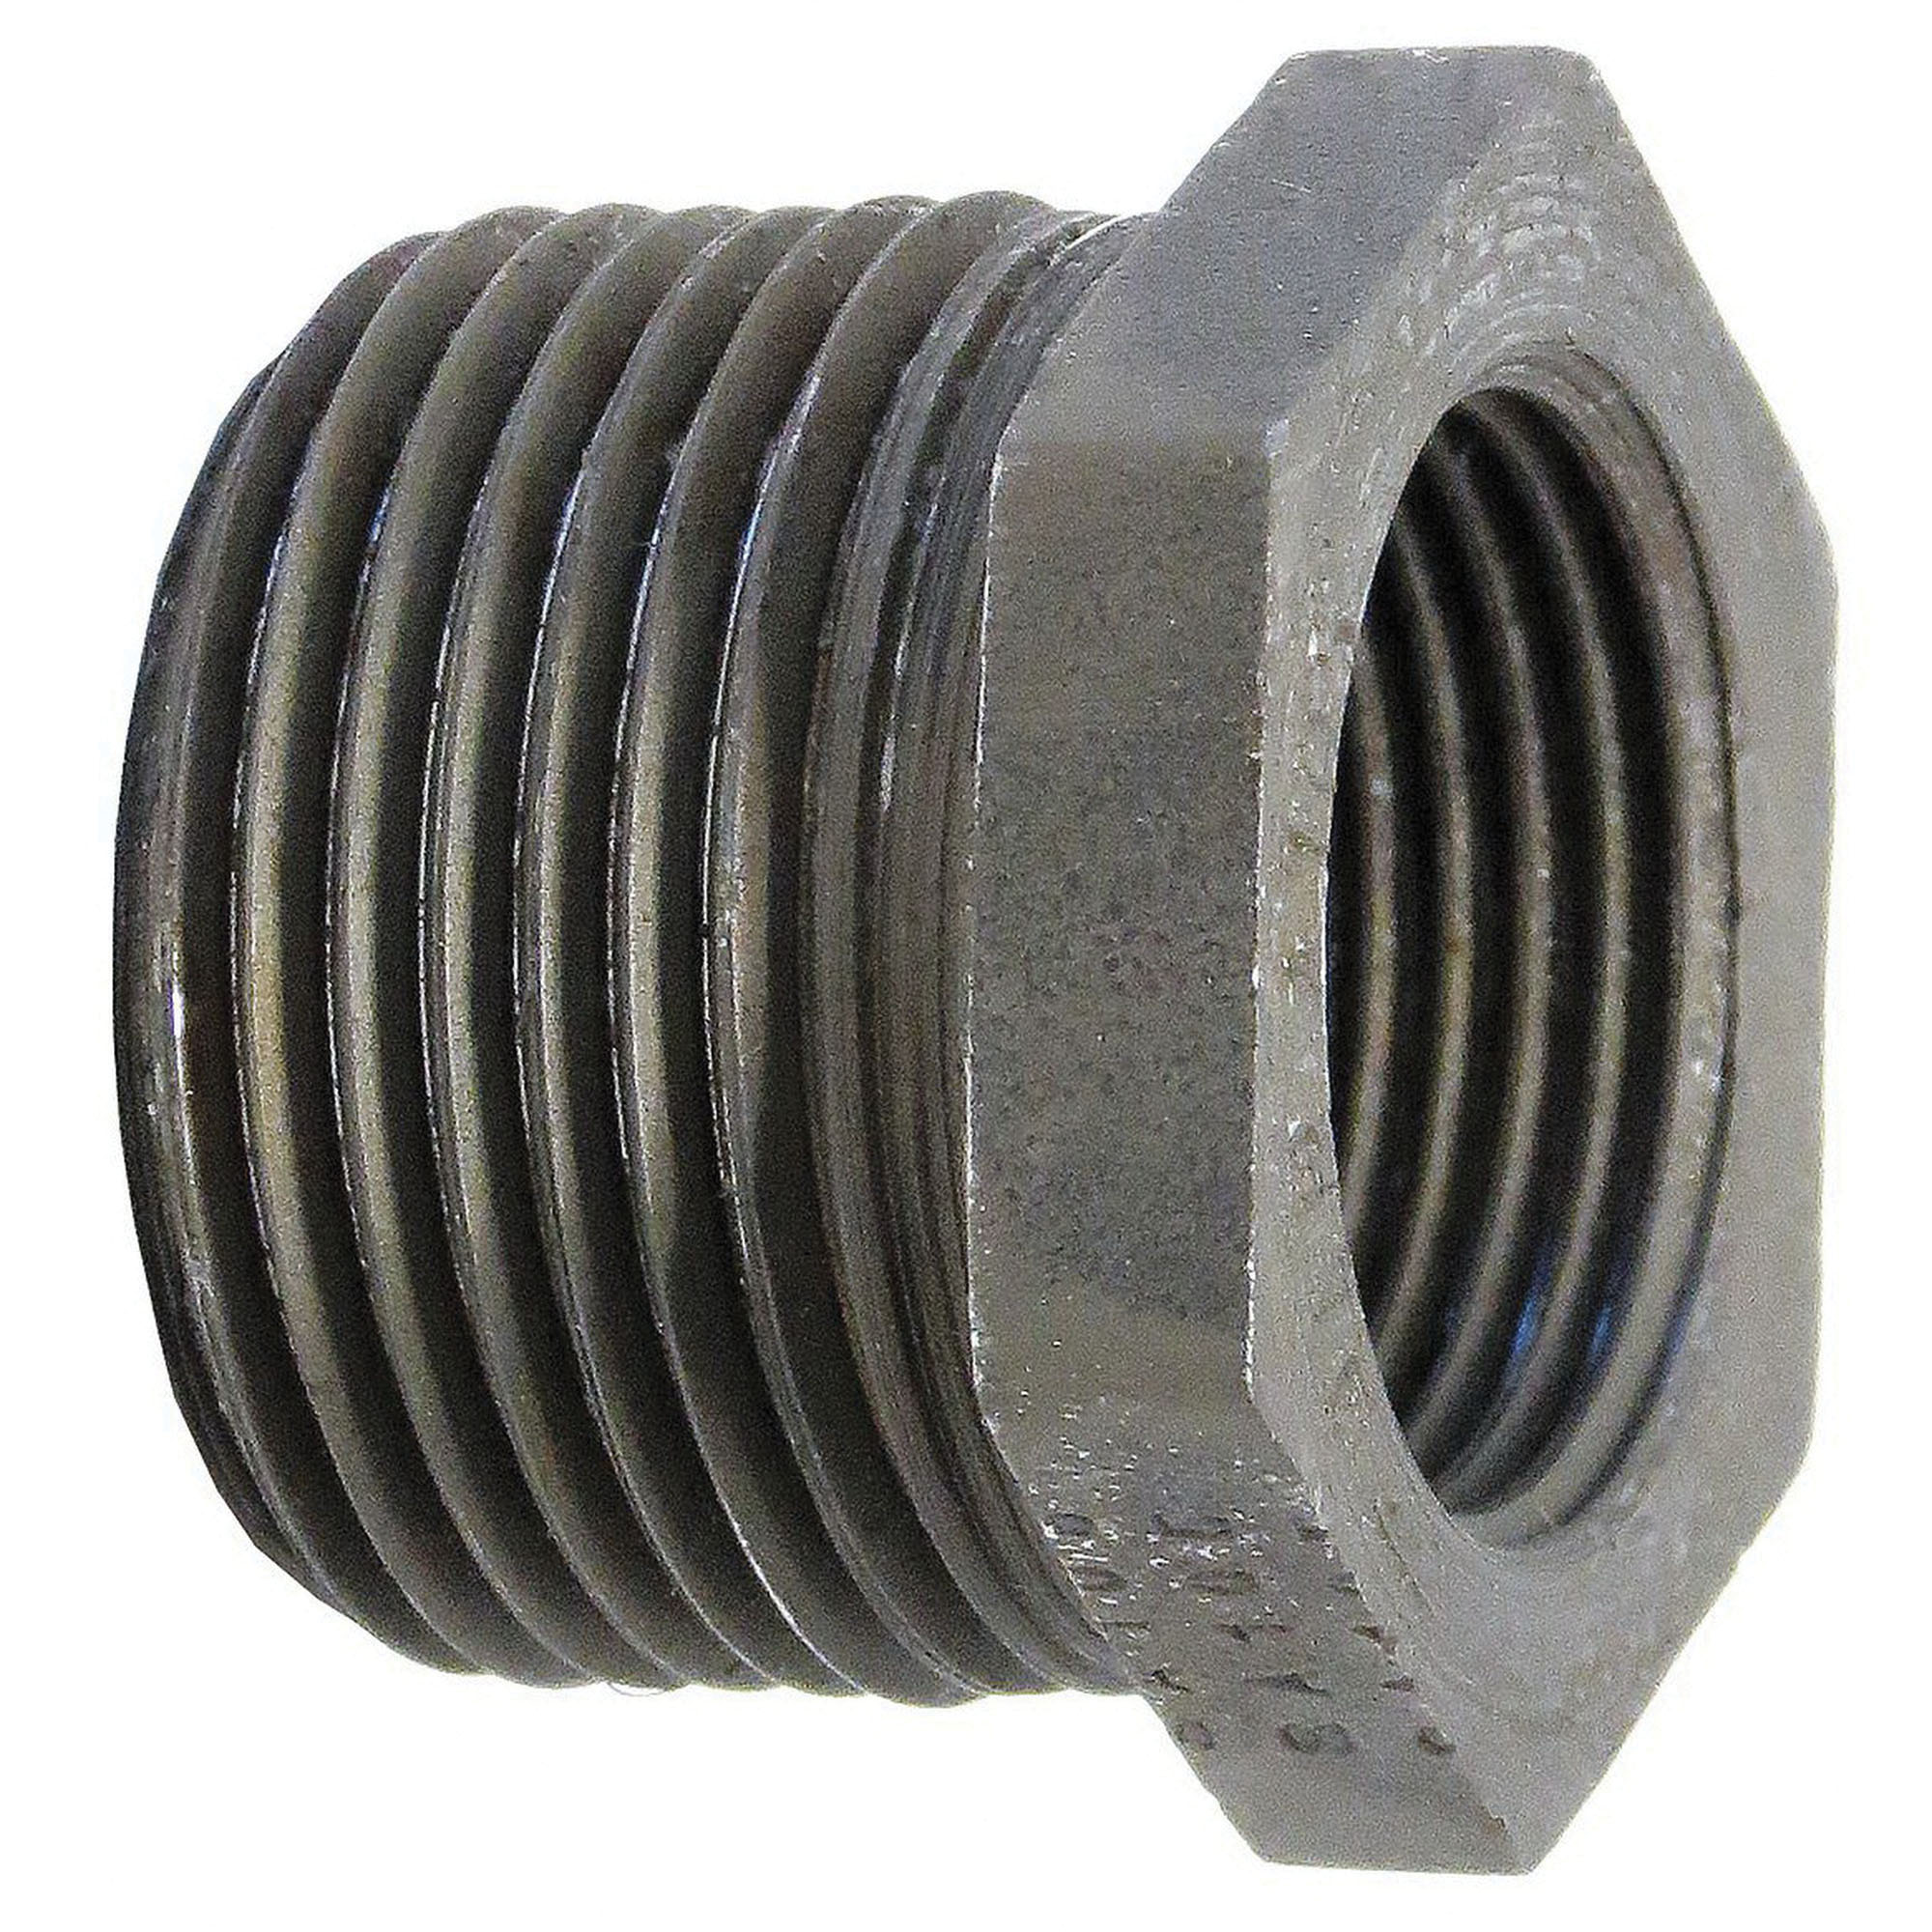 Steel Class 3000 Forged High Pressure Hex Bushing, 1 in x 3/4 in, MNPT x FNPT, Domestic, 50/CT